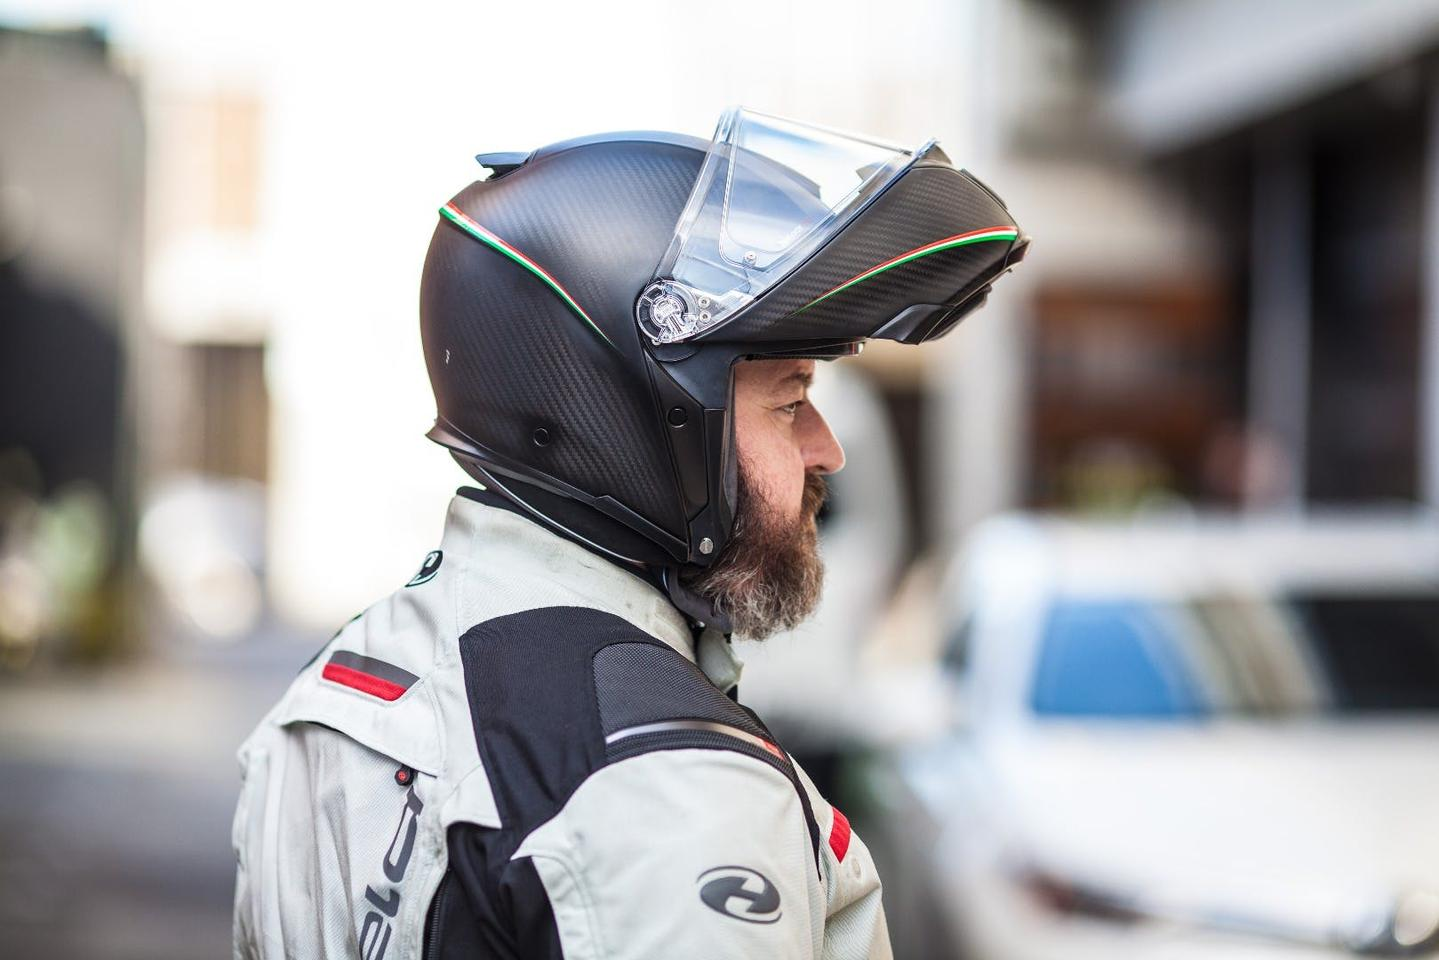 AGV SportModular: extreme comfort and lightness